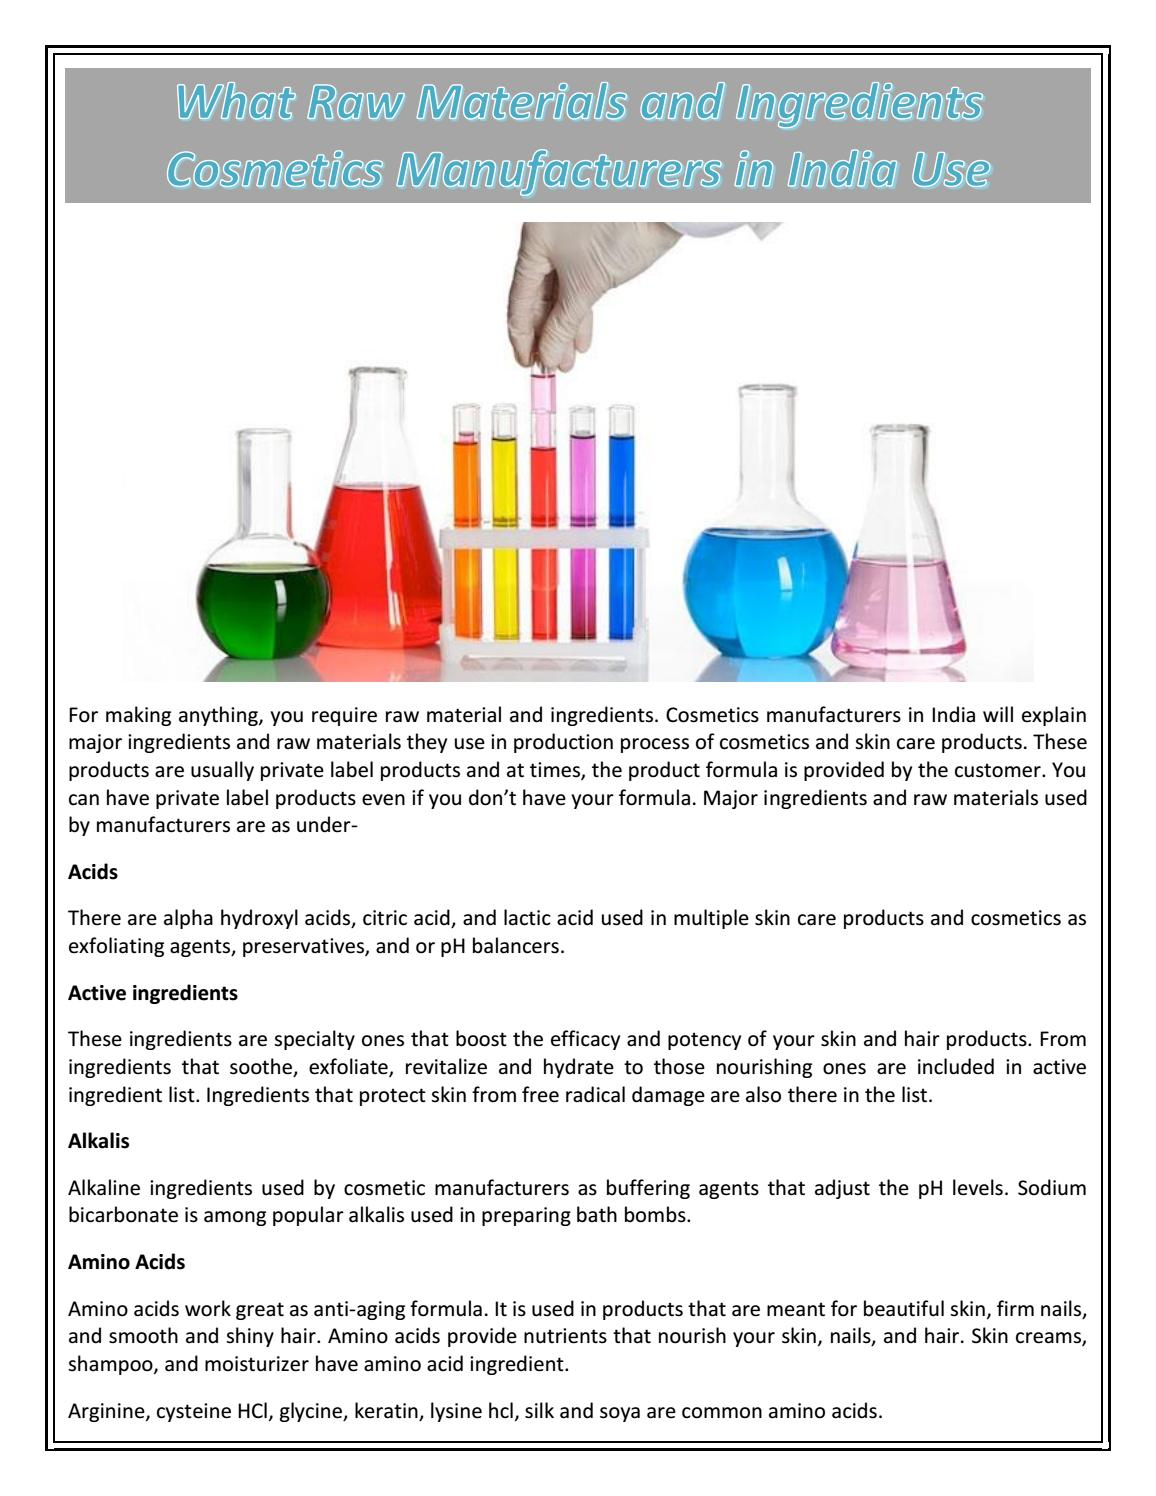 What Raw Materials and Ingredients Cosmetics Manufacturers